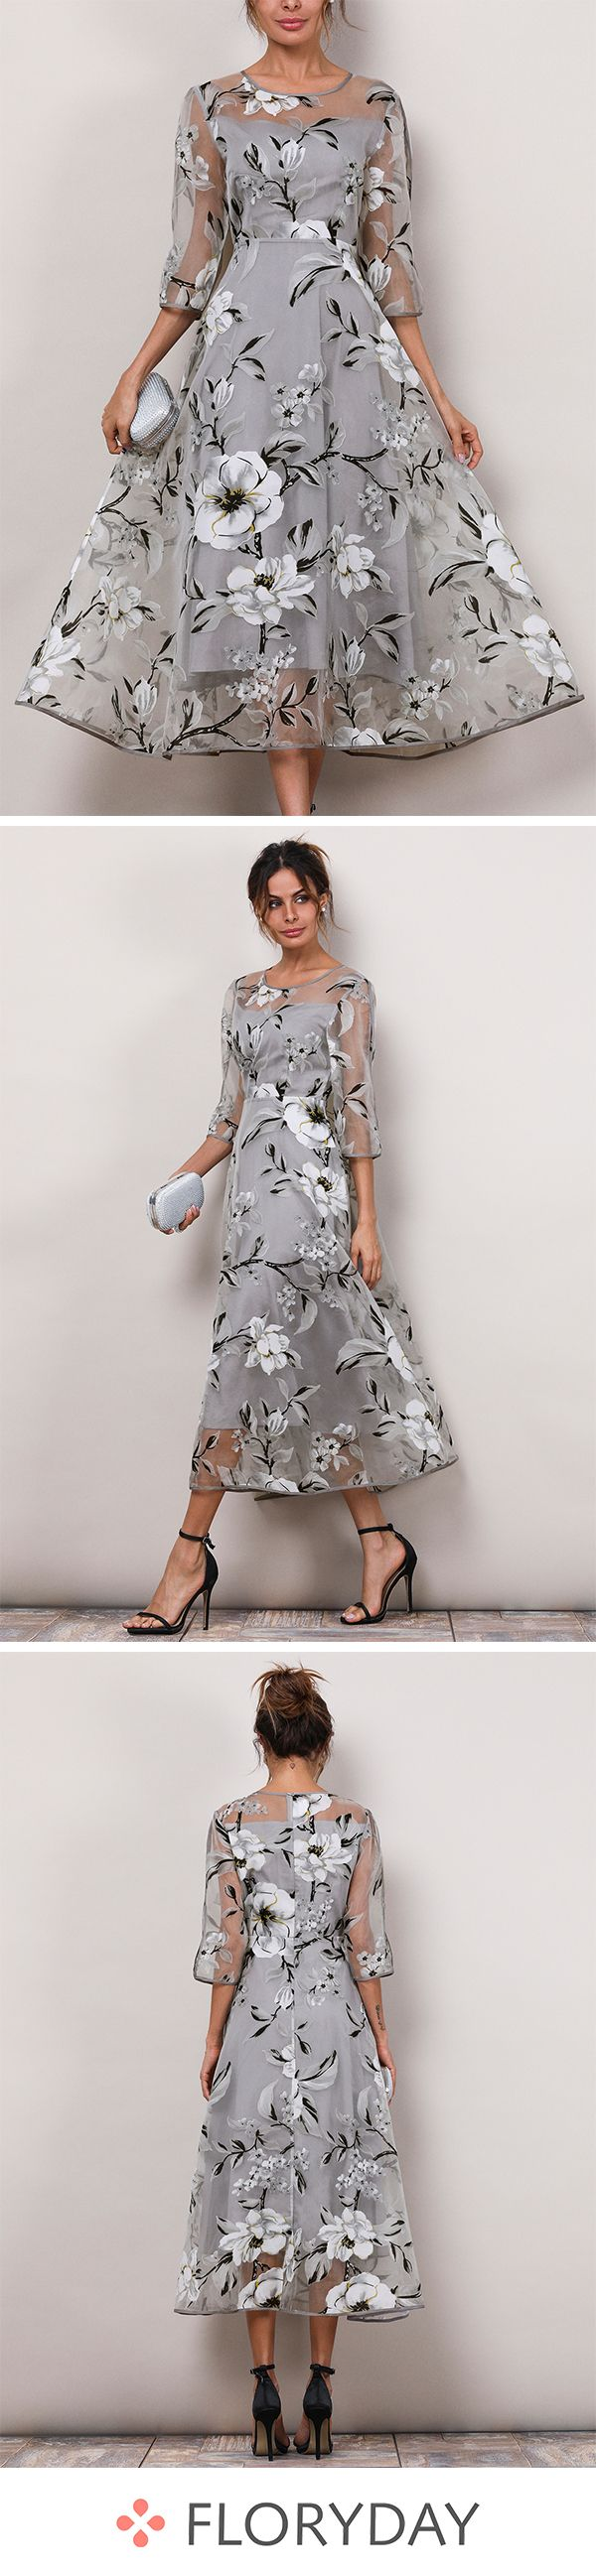 Floral 3/4 Sleeves Midi X-line Dress #groomdress